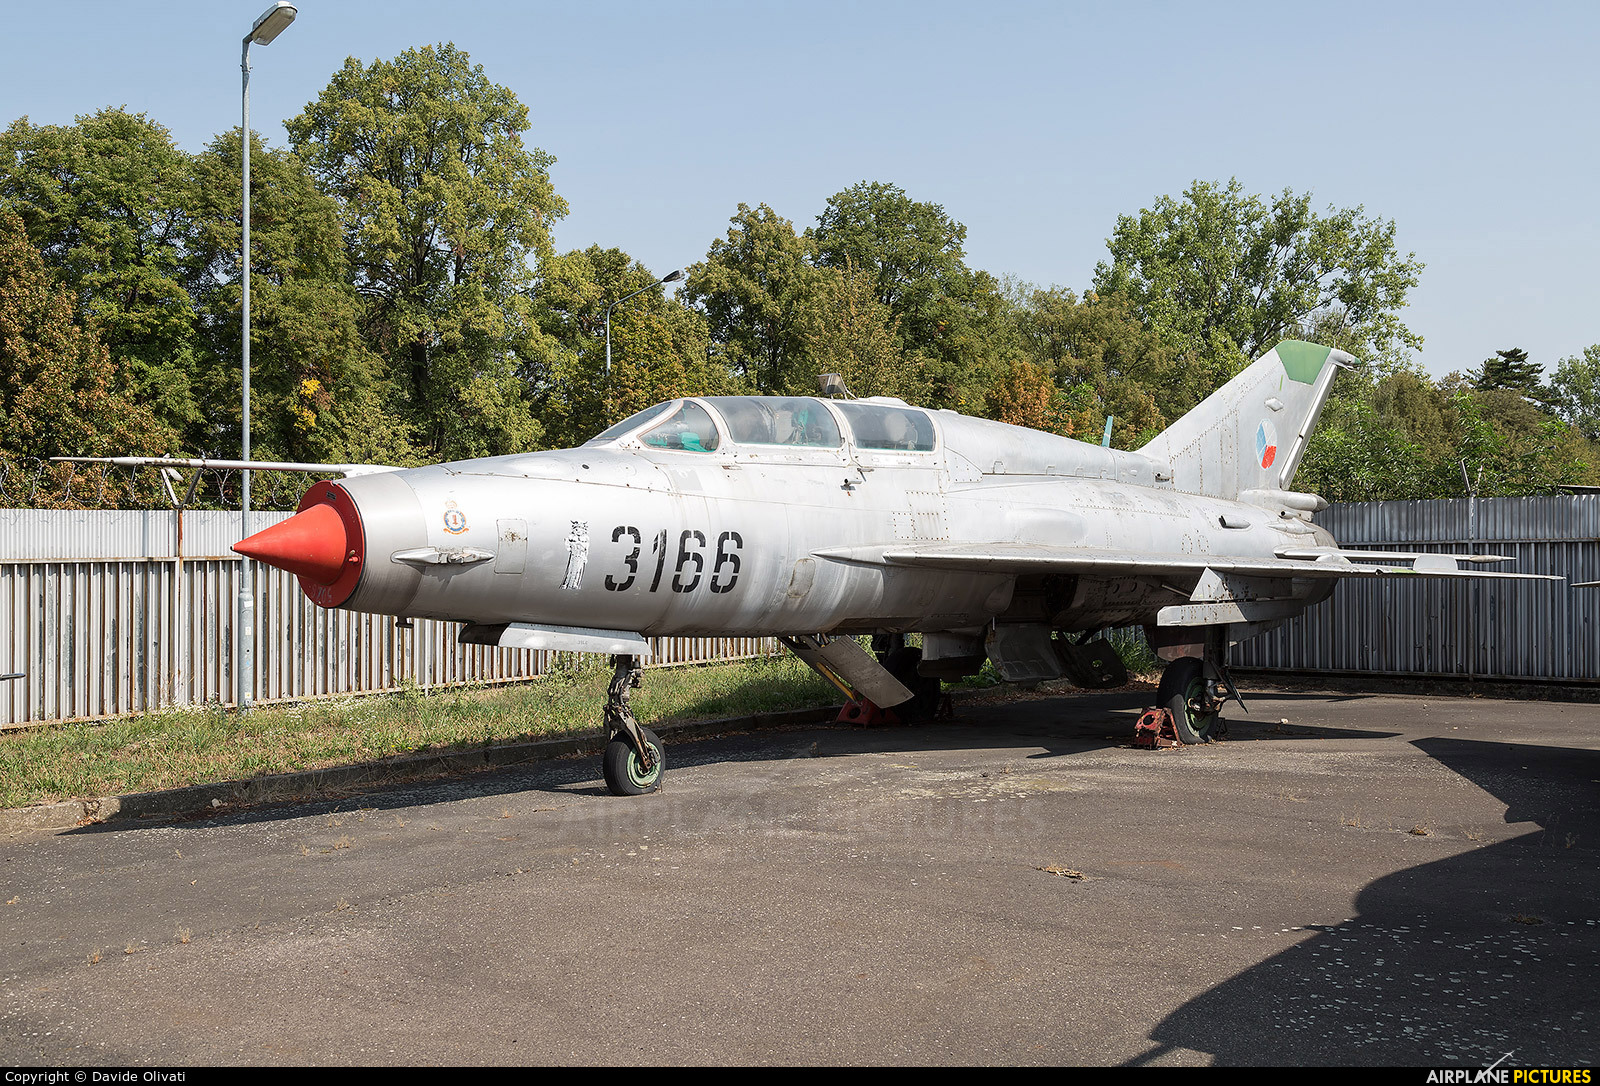 Czech - Air Force 3166 aircraft at Prague - Kbely, Letecké muzeum